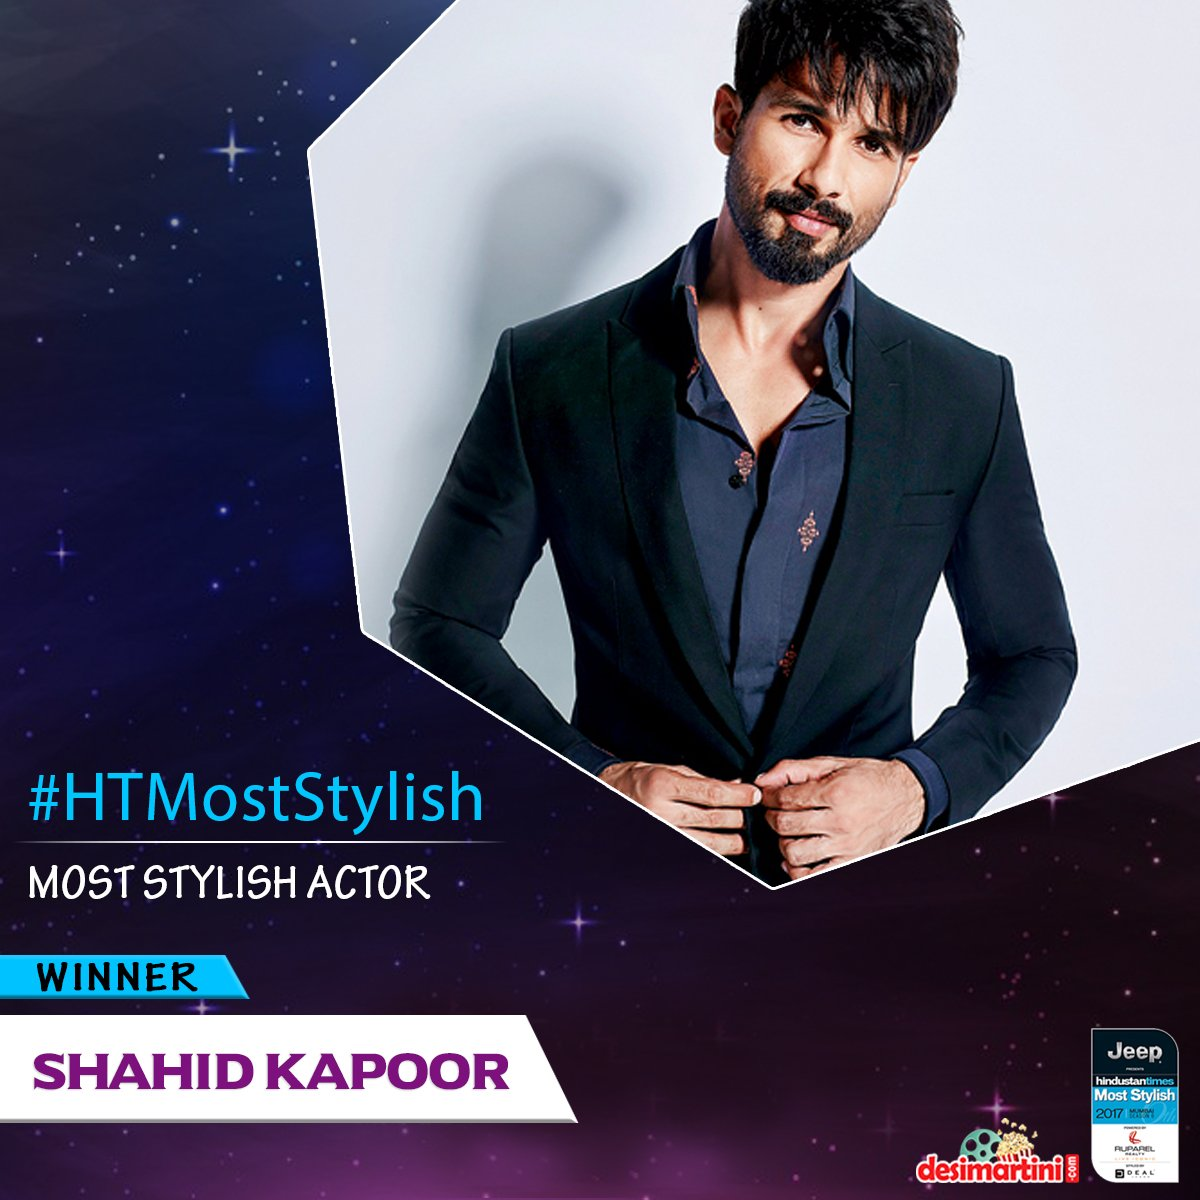 Most Stylish Actor award goes to @shahidkapoor #HTMostStylish